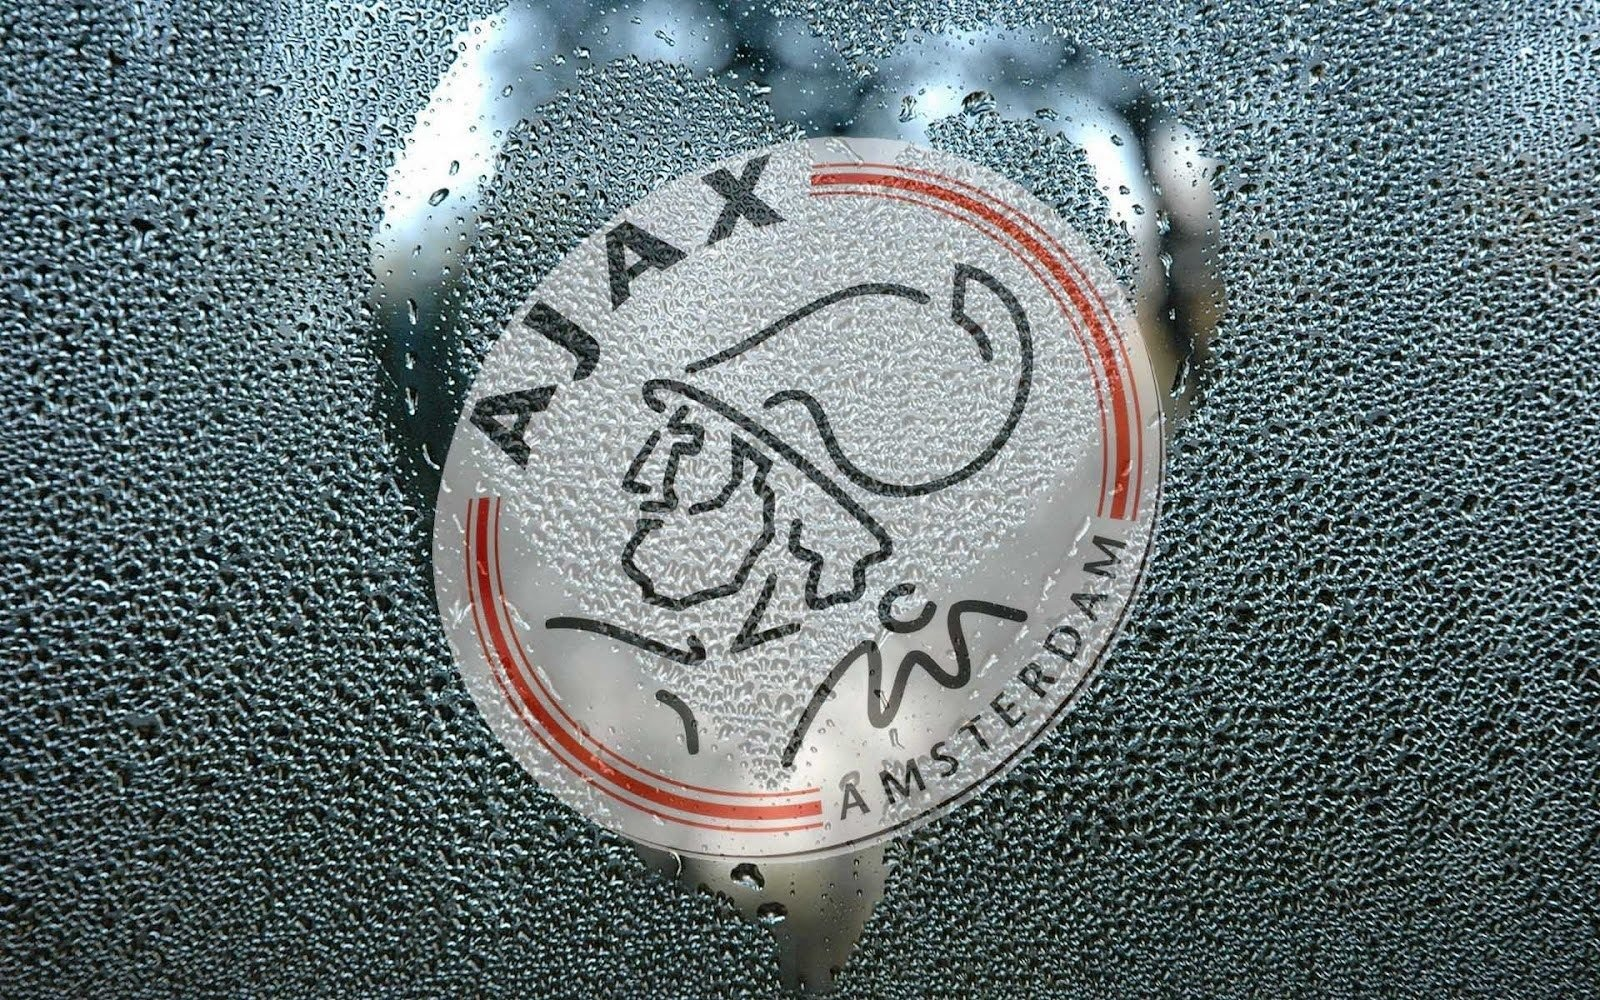 Best Of Ajax Wallpapers Hd